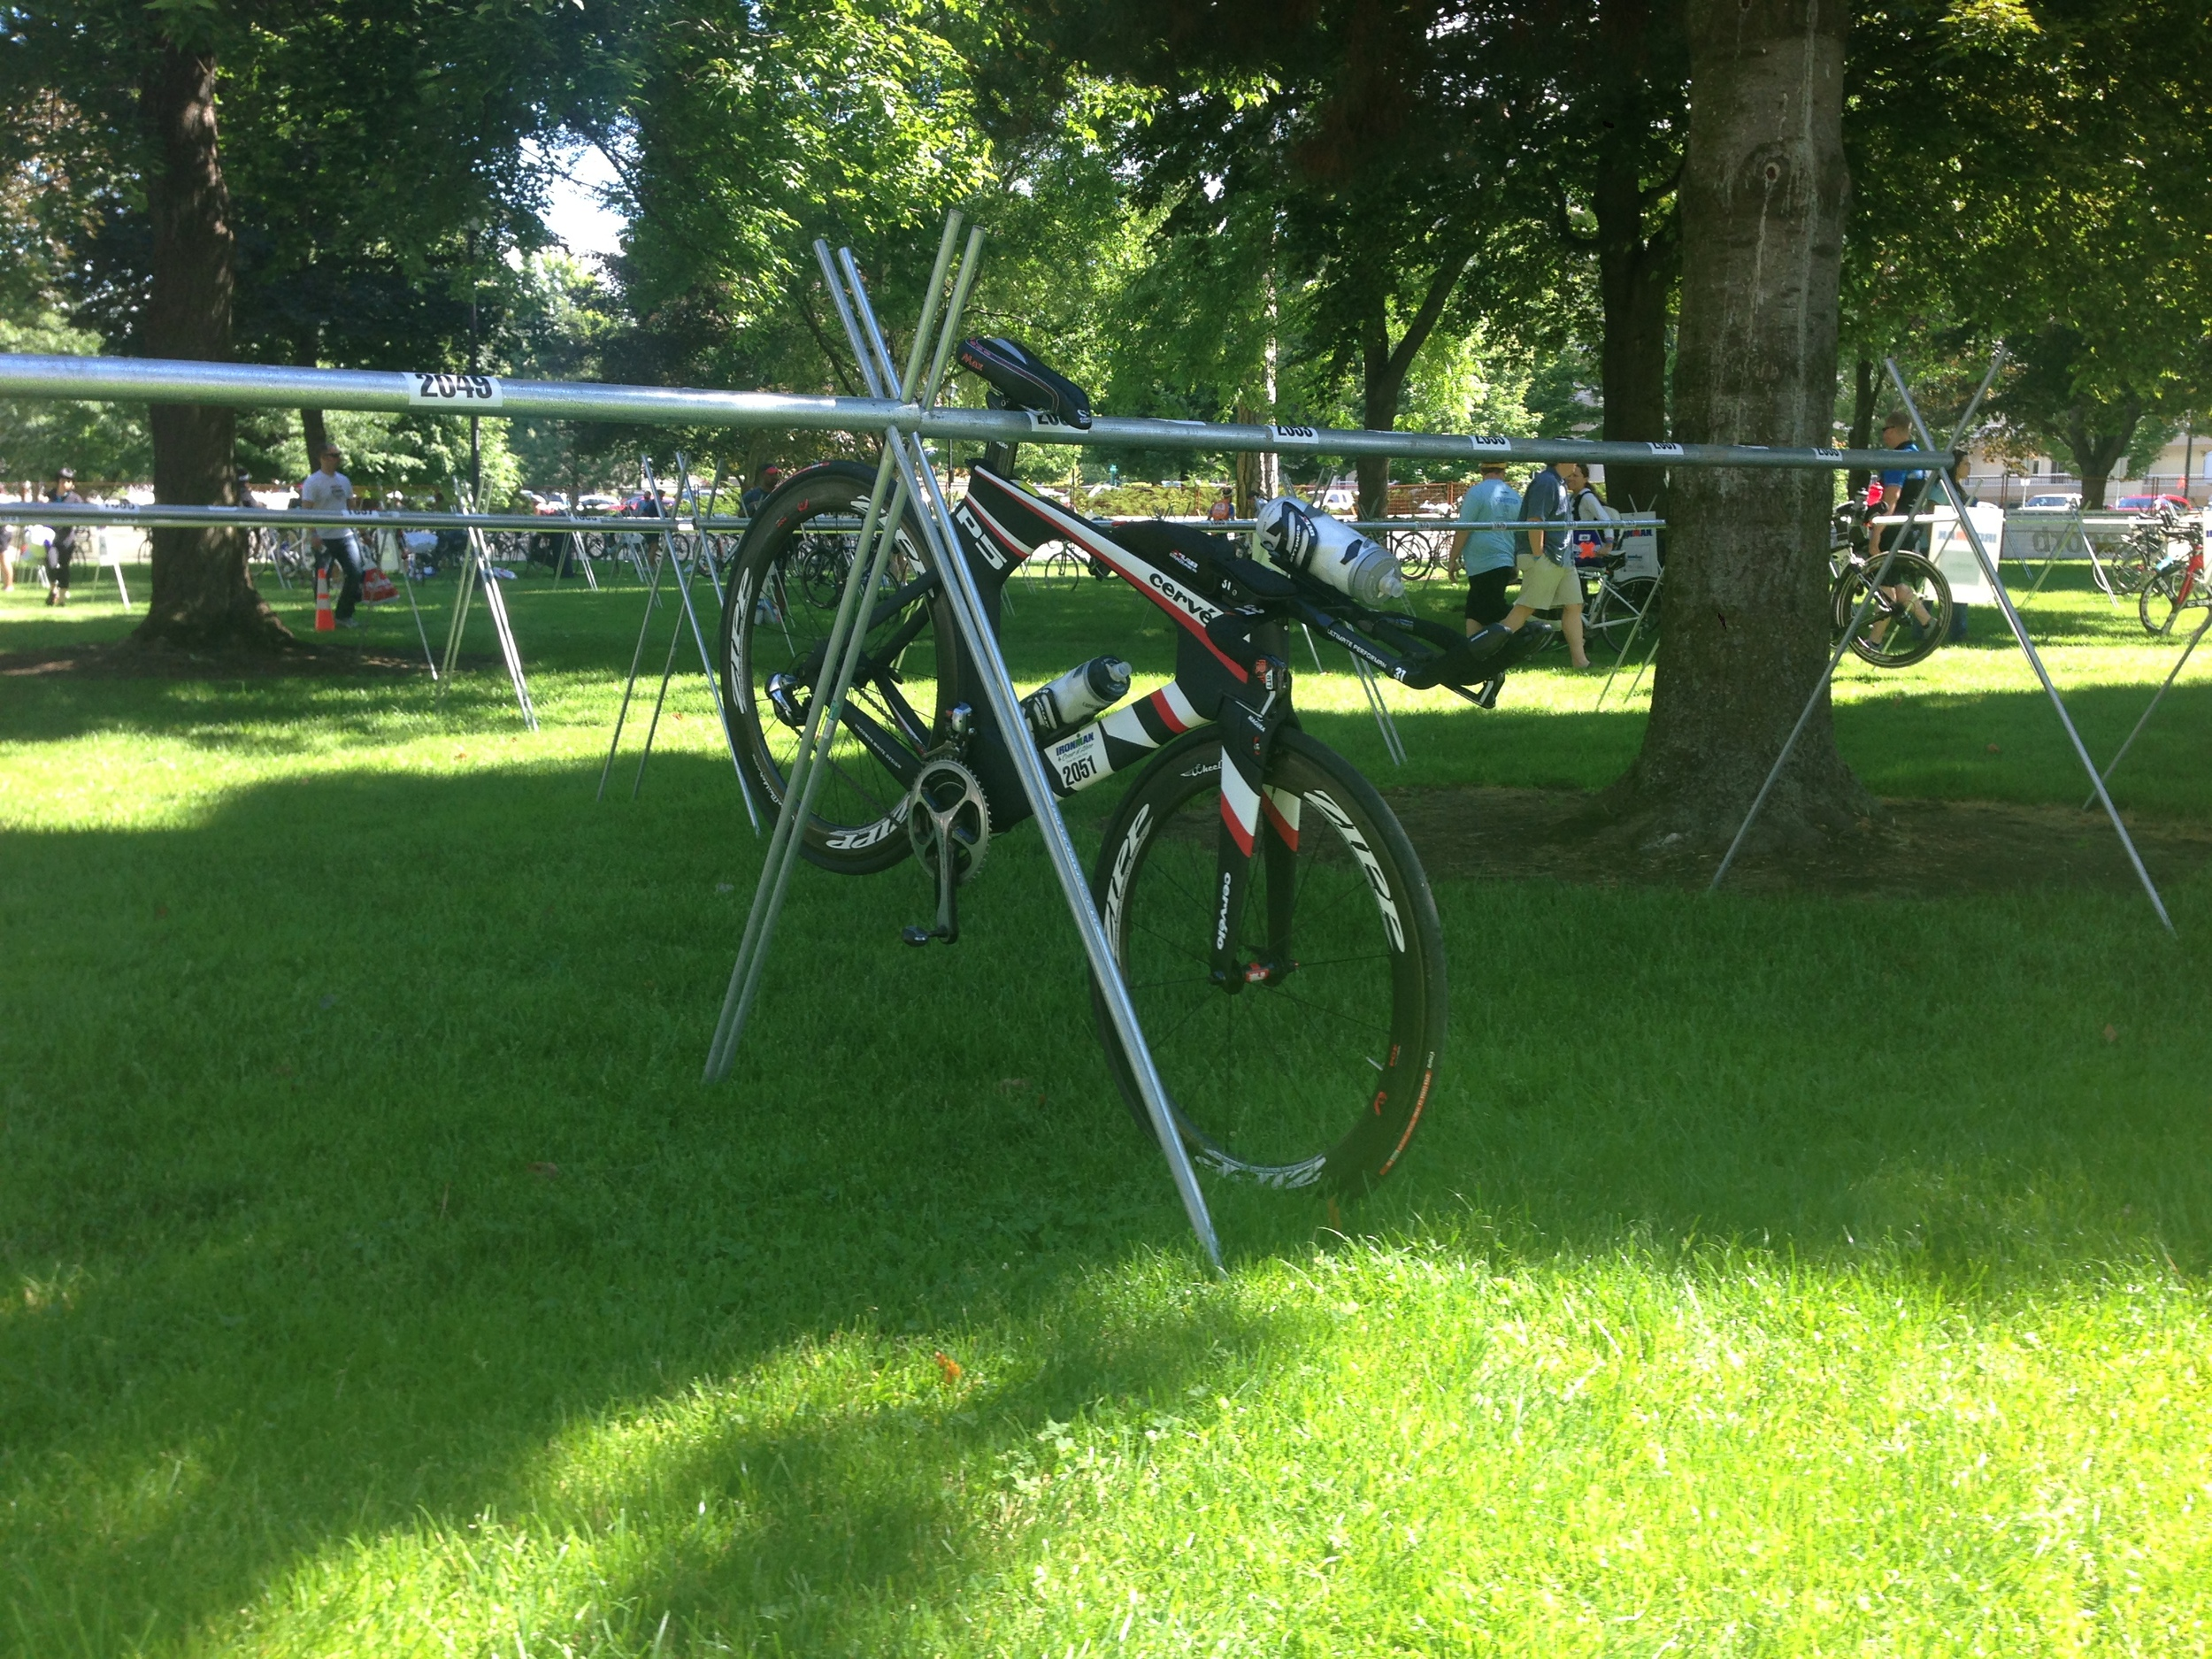 Bike racked in my numbered spot.